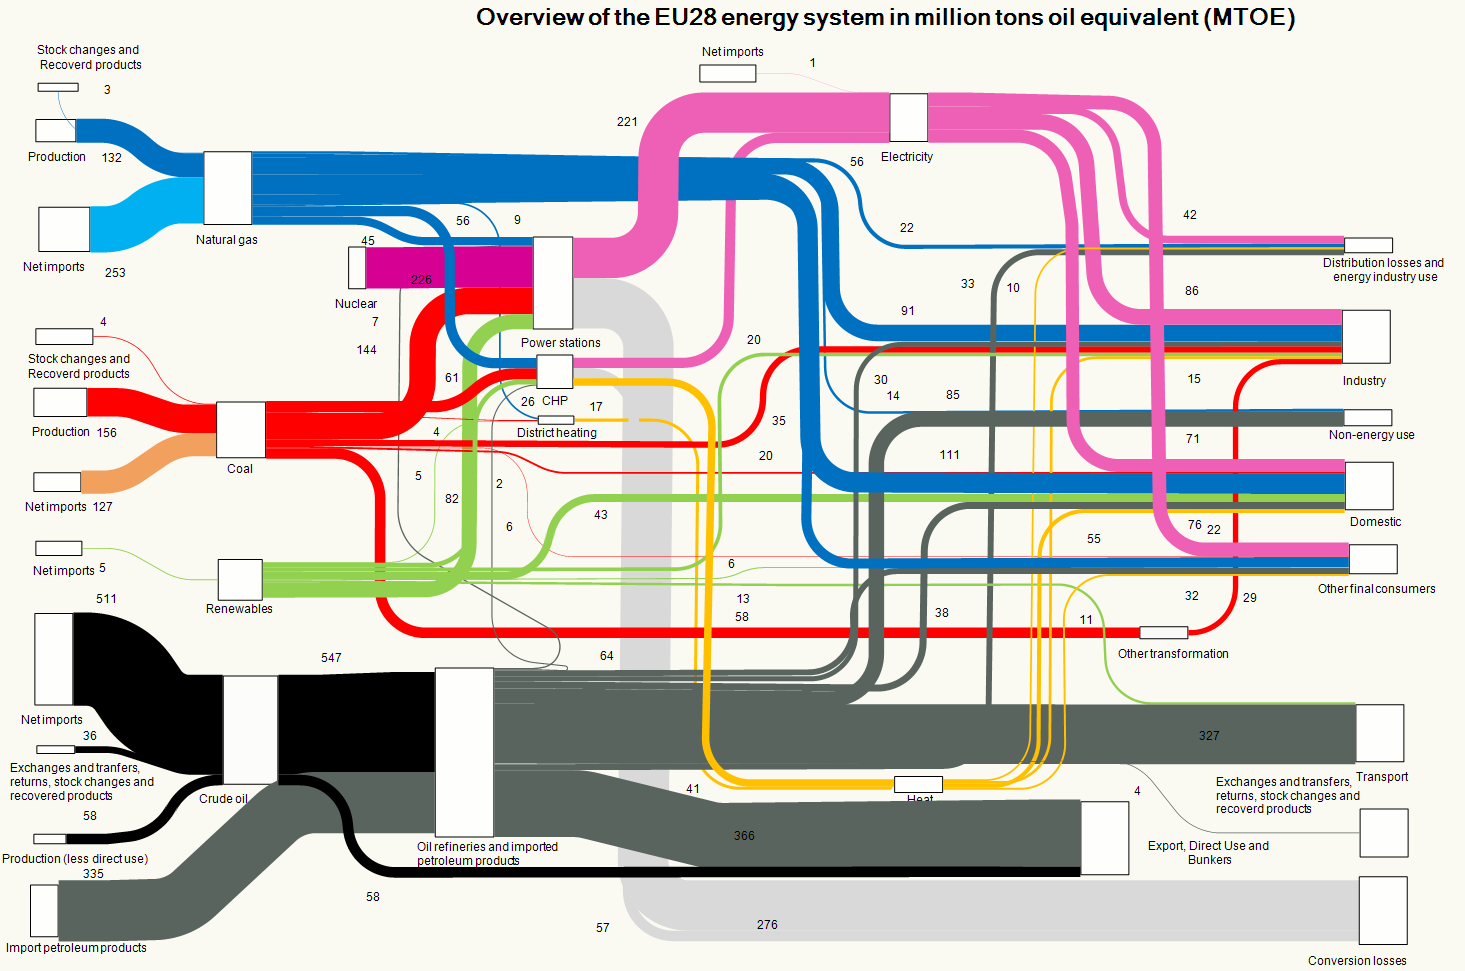 The overall picture of the energy system